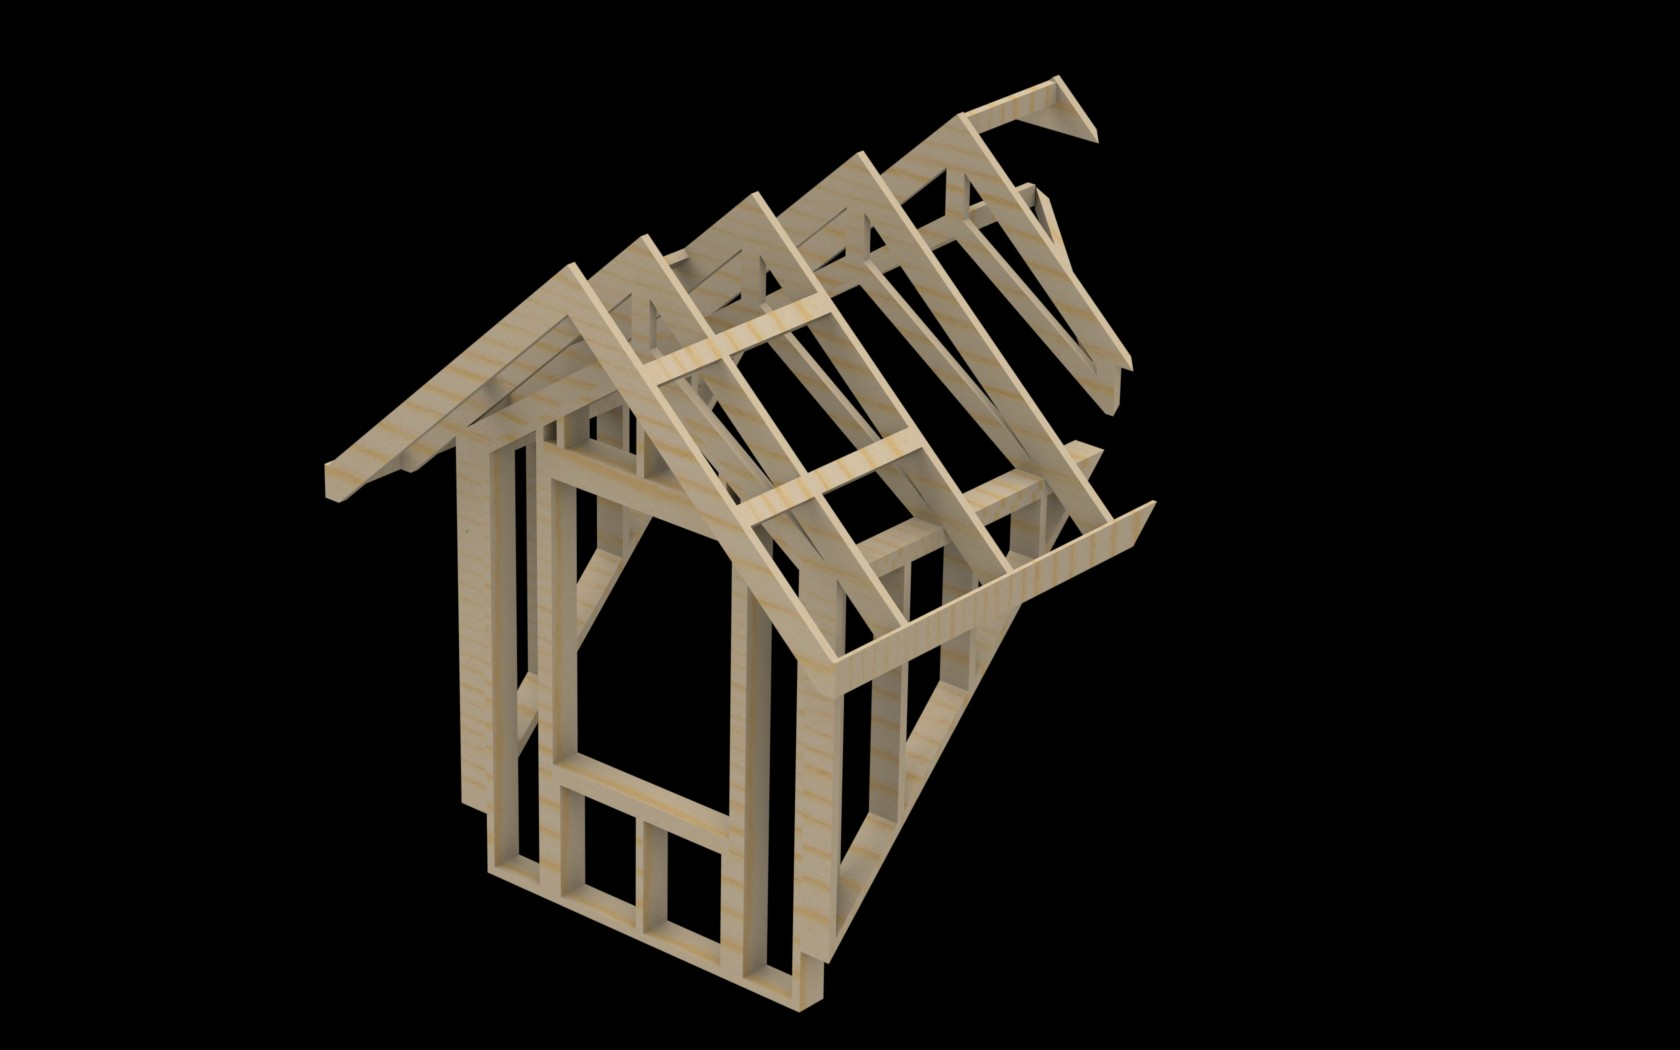 Minecraft Medieval Wall Tower likewise Bale Hacienda together with Playhouse Plans Locate Great Results Inside Your Seek Out Secrets Relating To Woodworking By Simply Reading This furthermore ment Page 1 besides Cinemas. on what types of small house plans blueprints